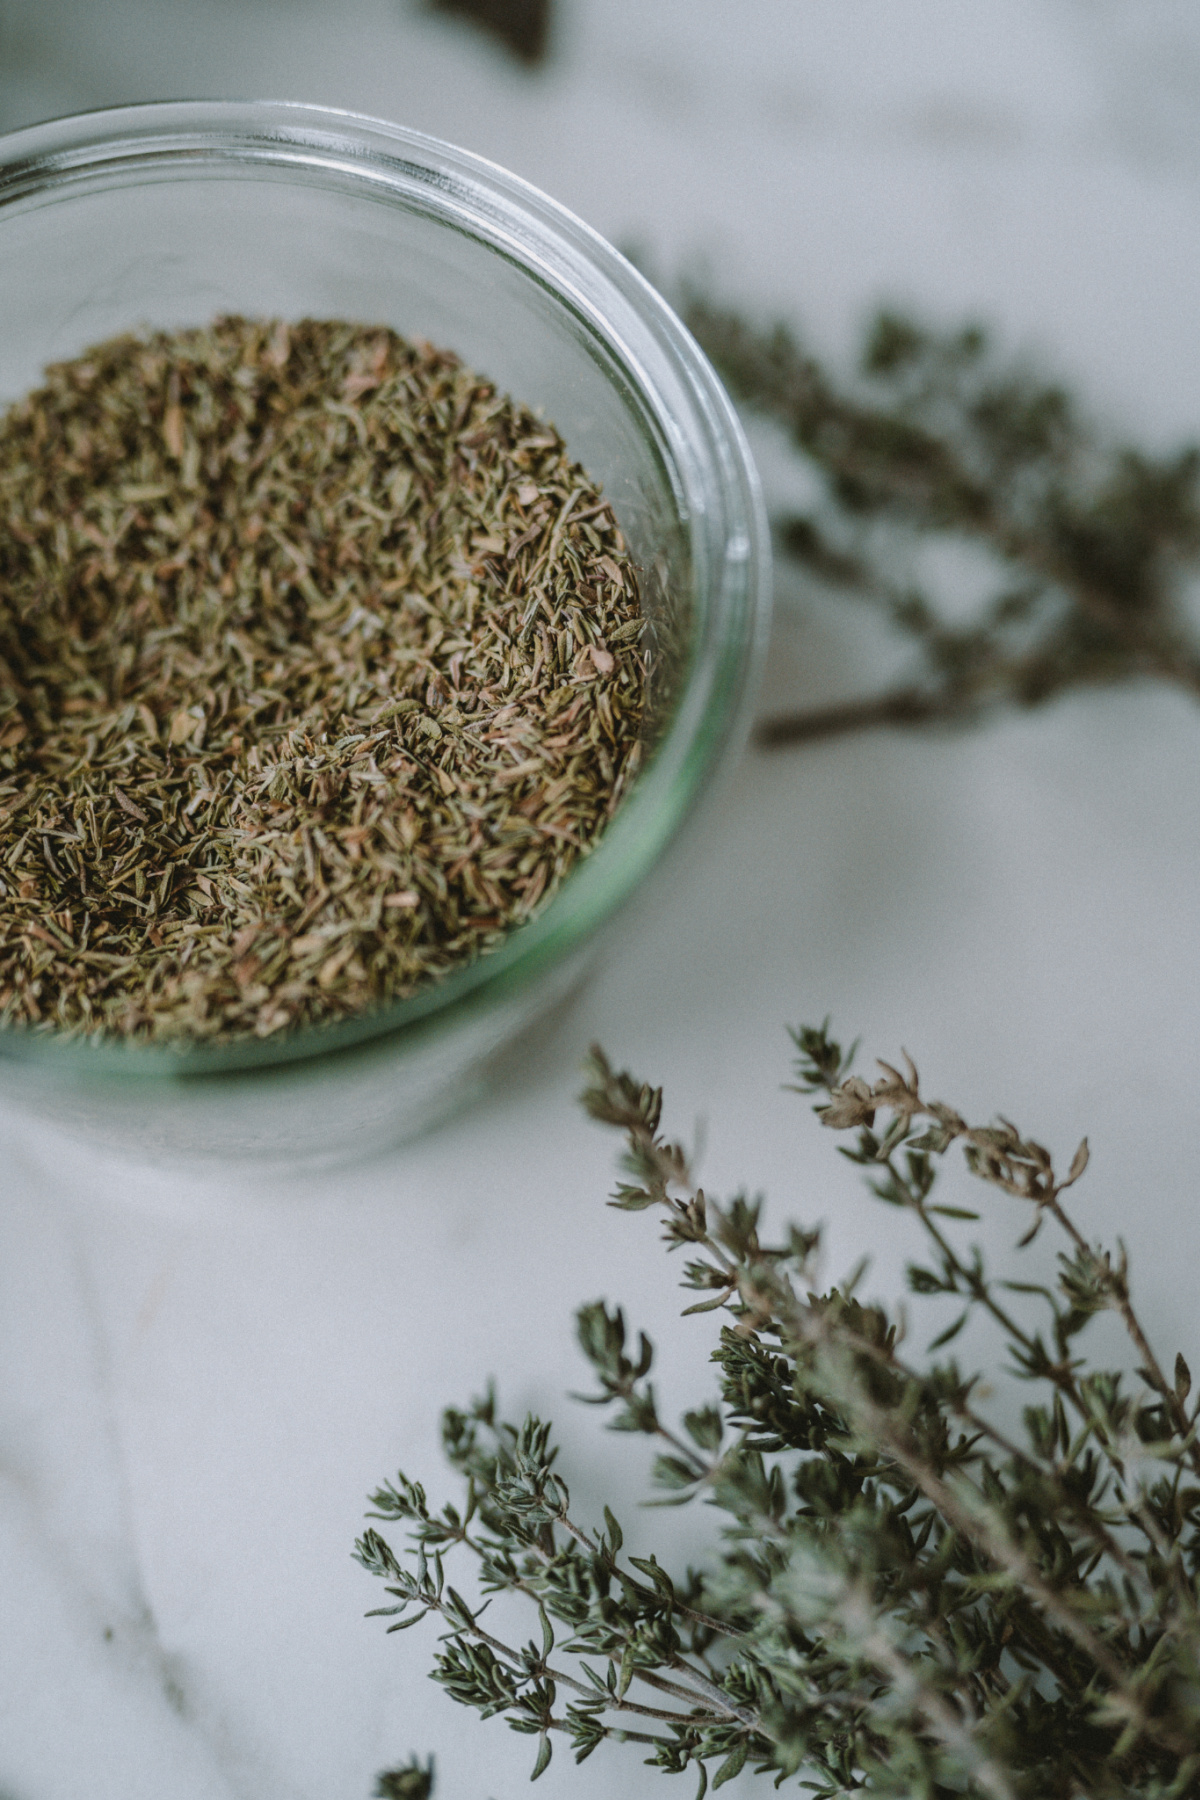 dried thyme in a glass bowl